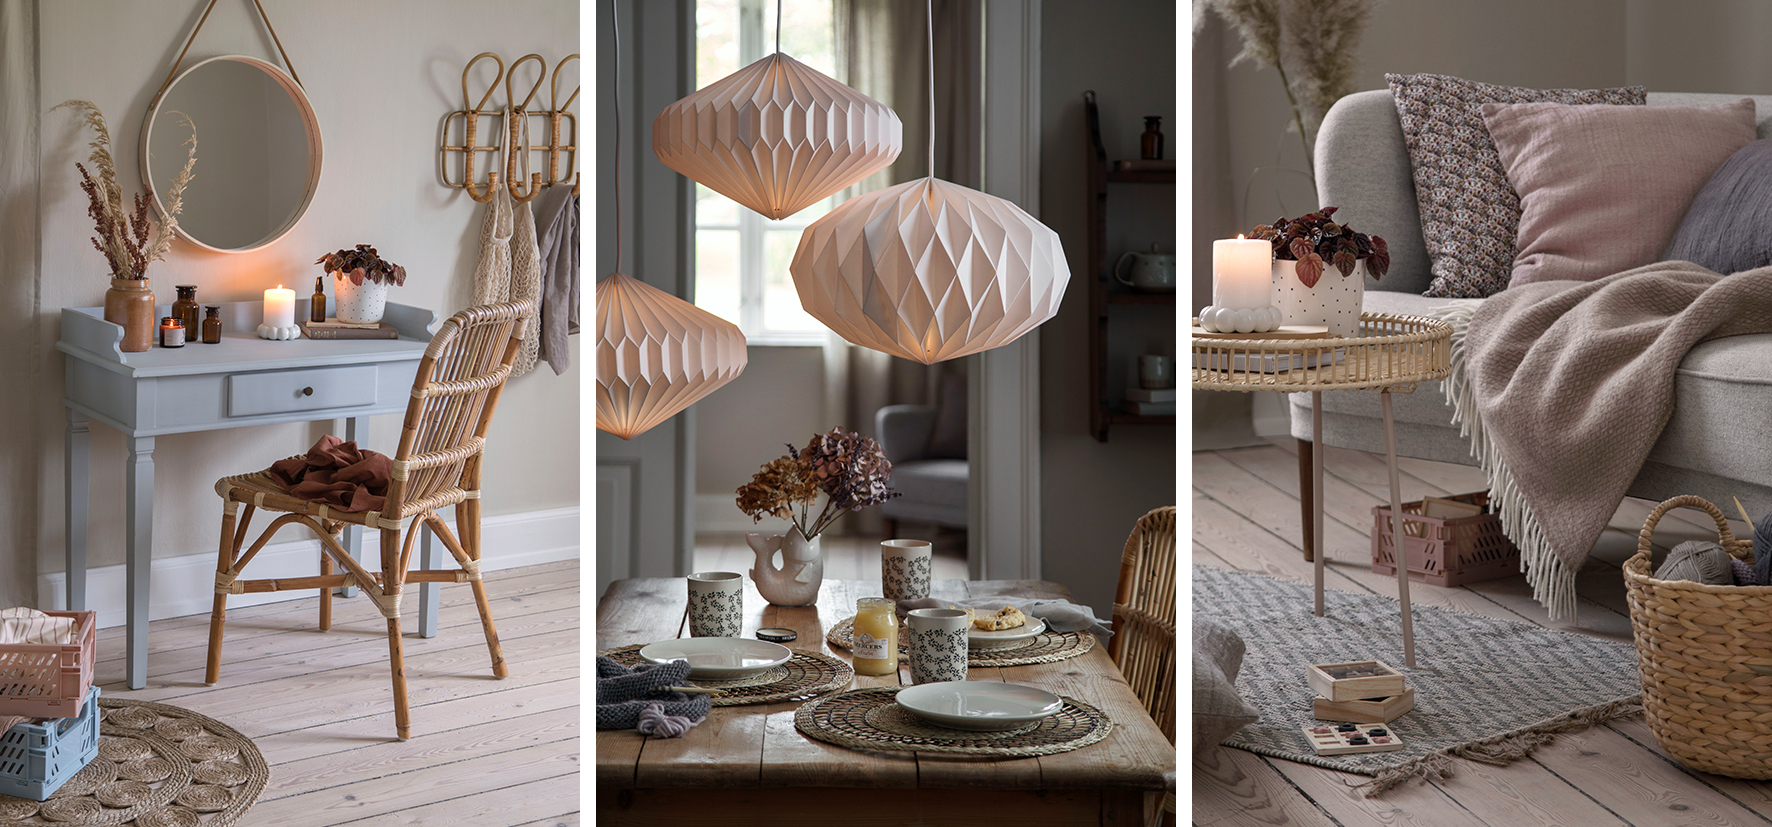 Invite 'Hygge' indoors with the new 2020 lifestyle collection from Søstrene Grene